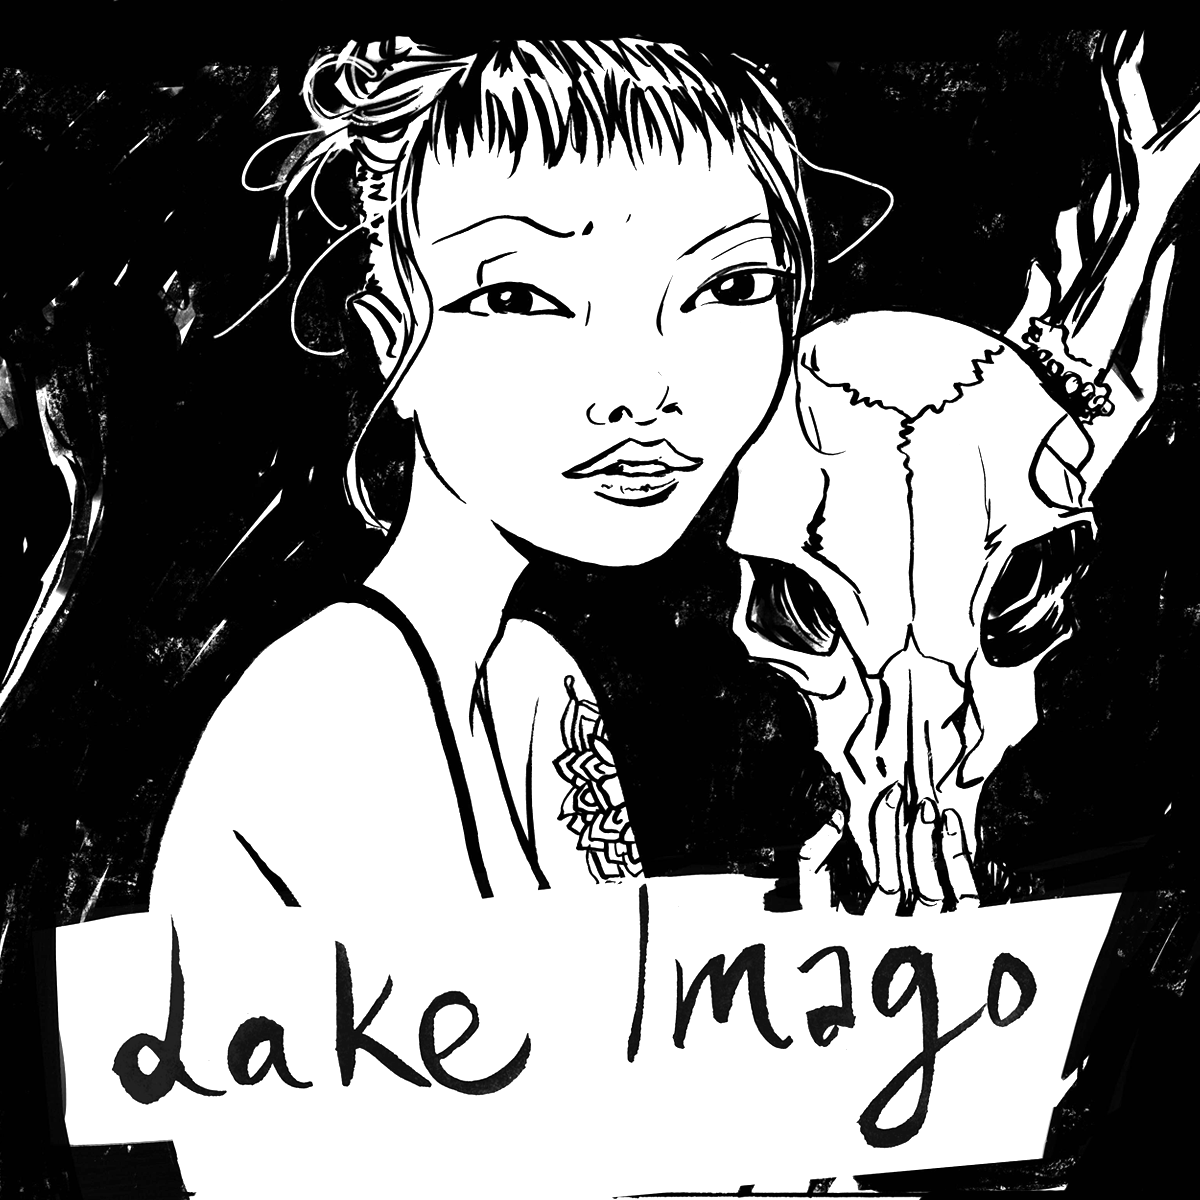 Top of the Lake: An Interview with Lake Imago Creators Jamaica Dyer and Eddie Wright